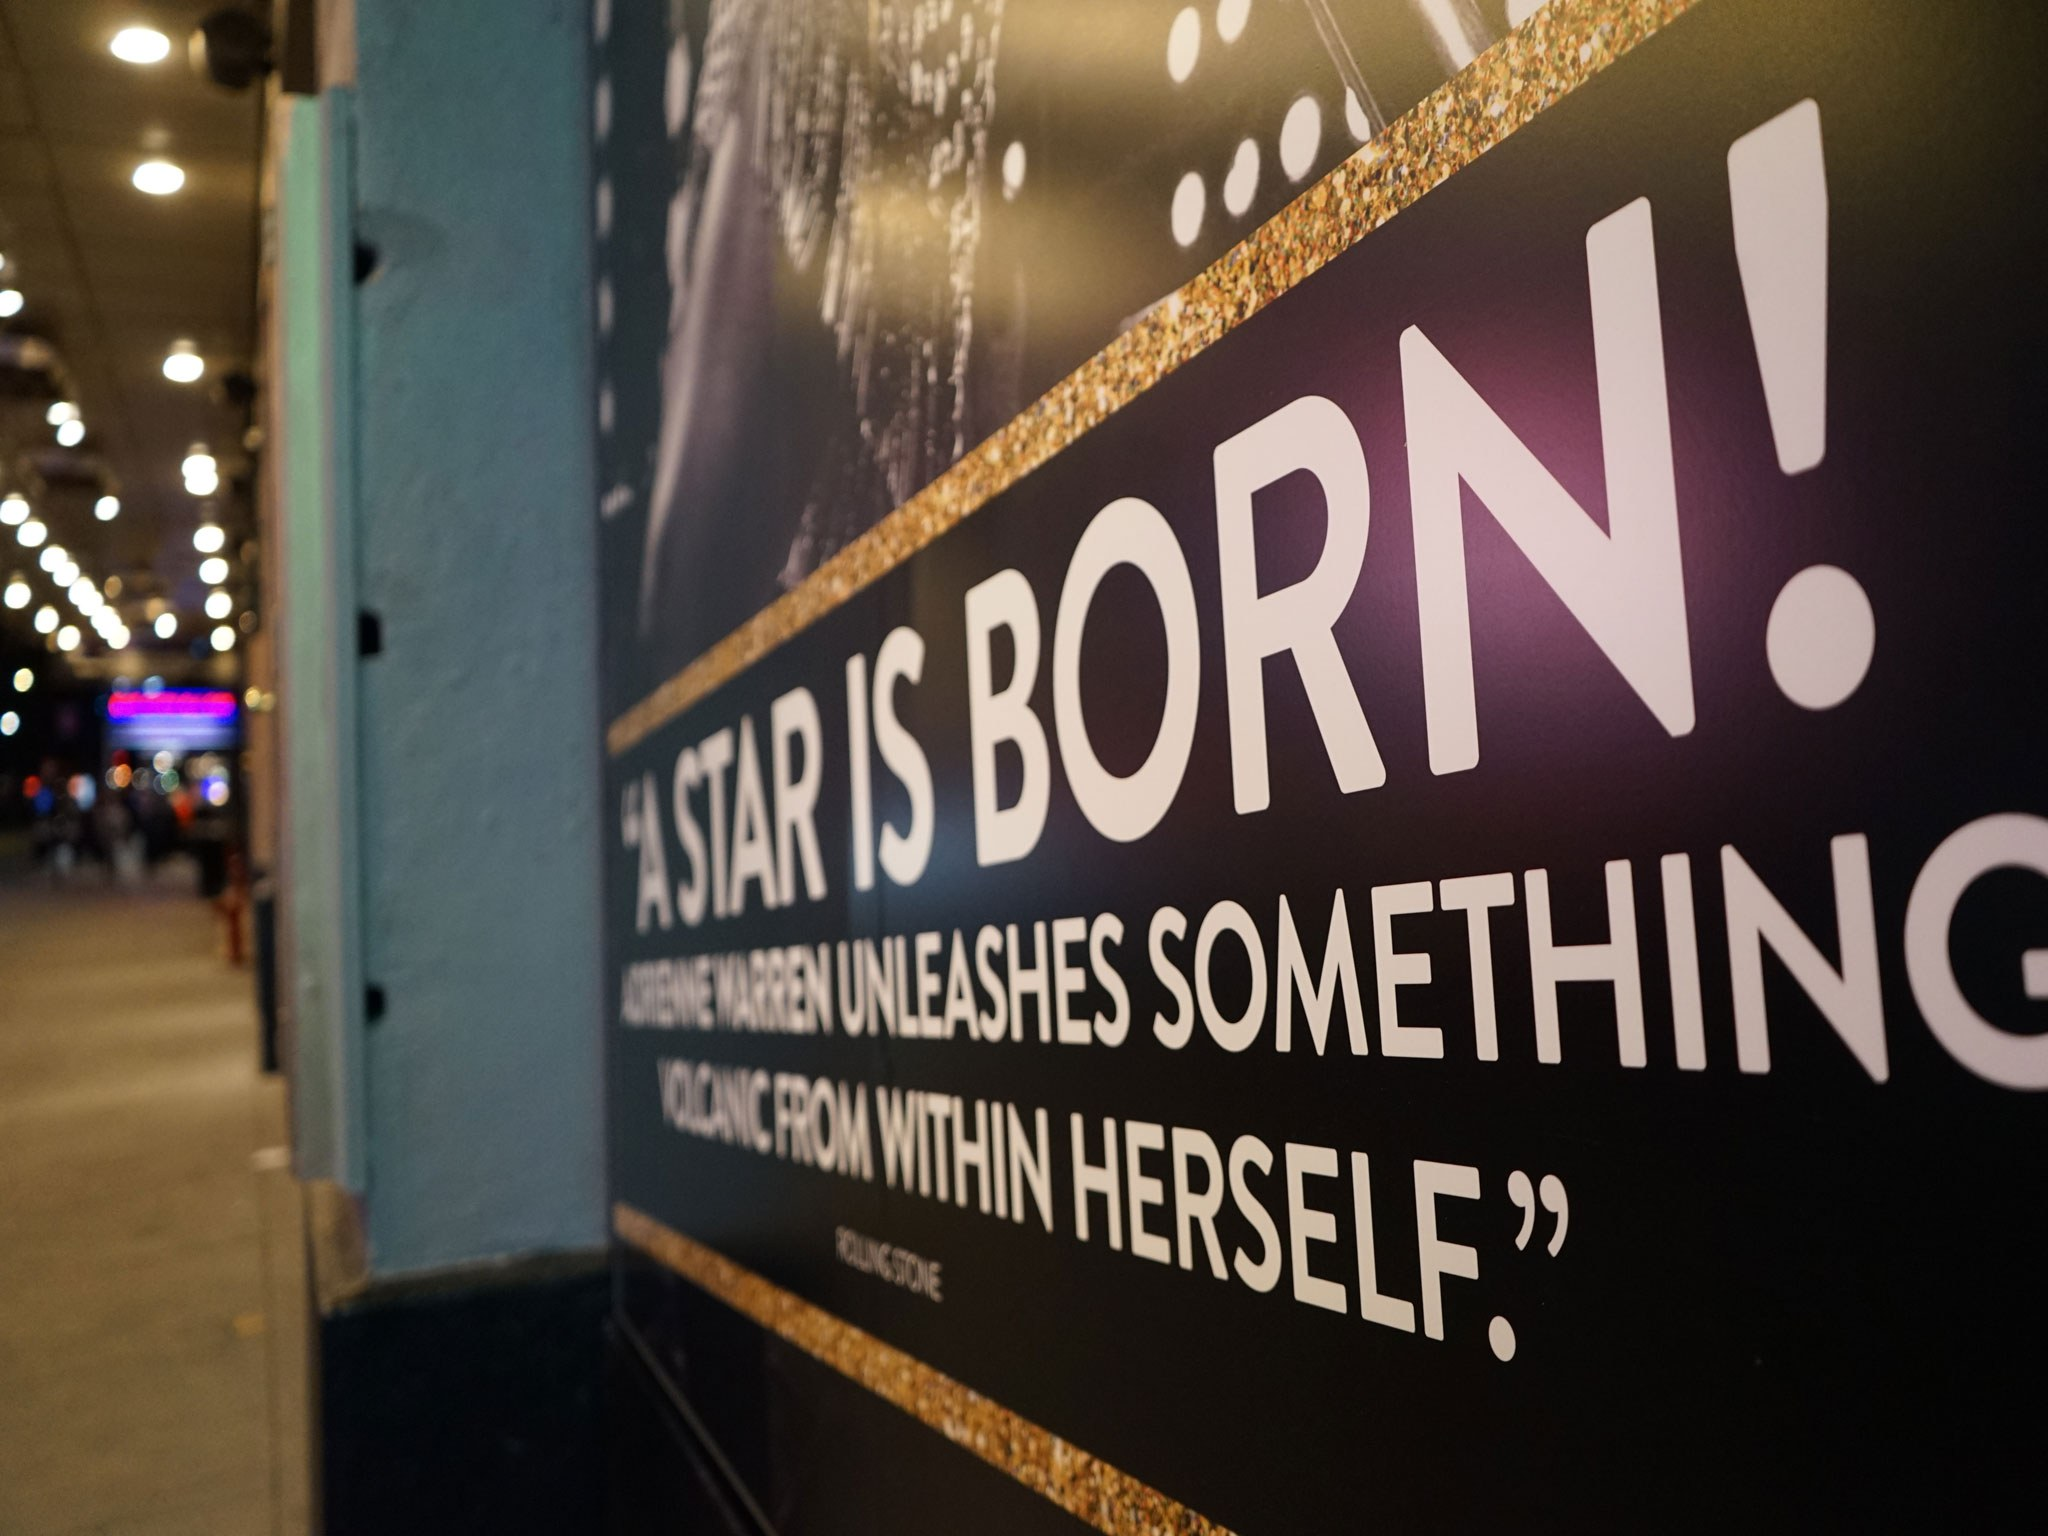 A Star is Born Show Marquee